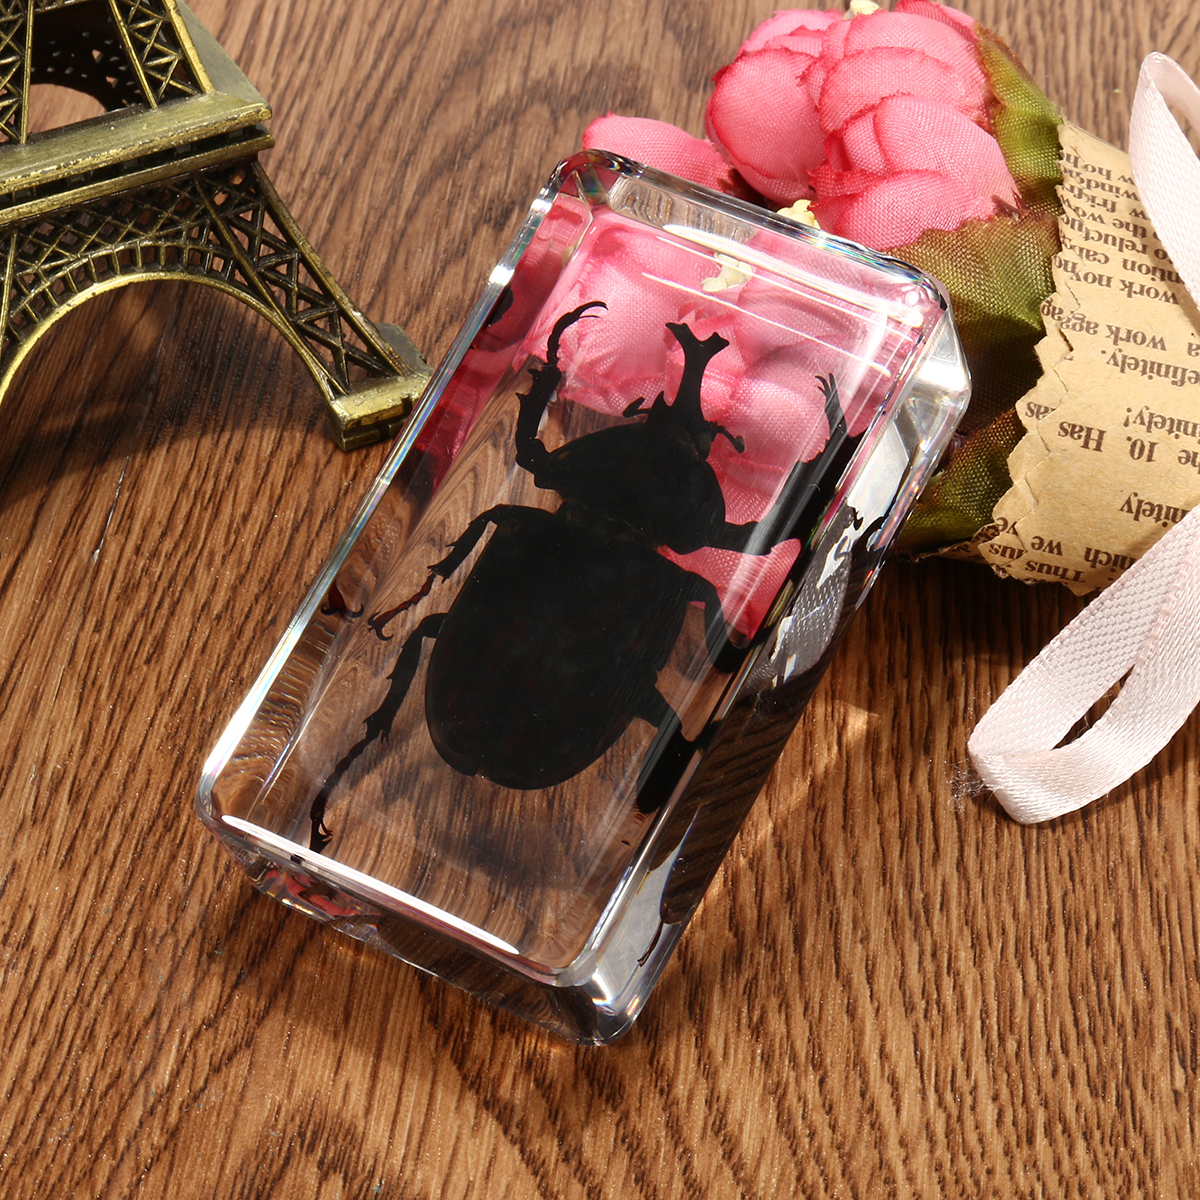 Clear Acrylic Lucite Insect Specimen Spider Black Longhorn Beetle Scorpions Craft Science Toy